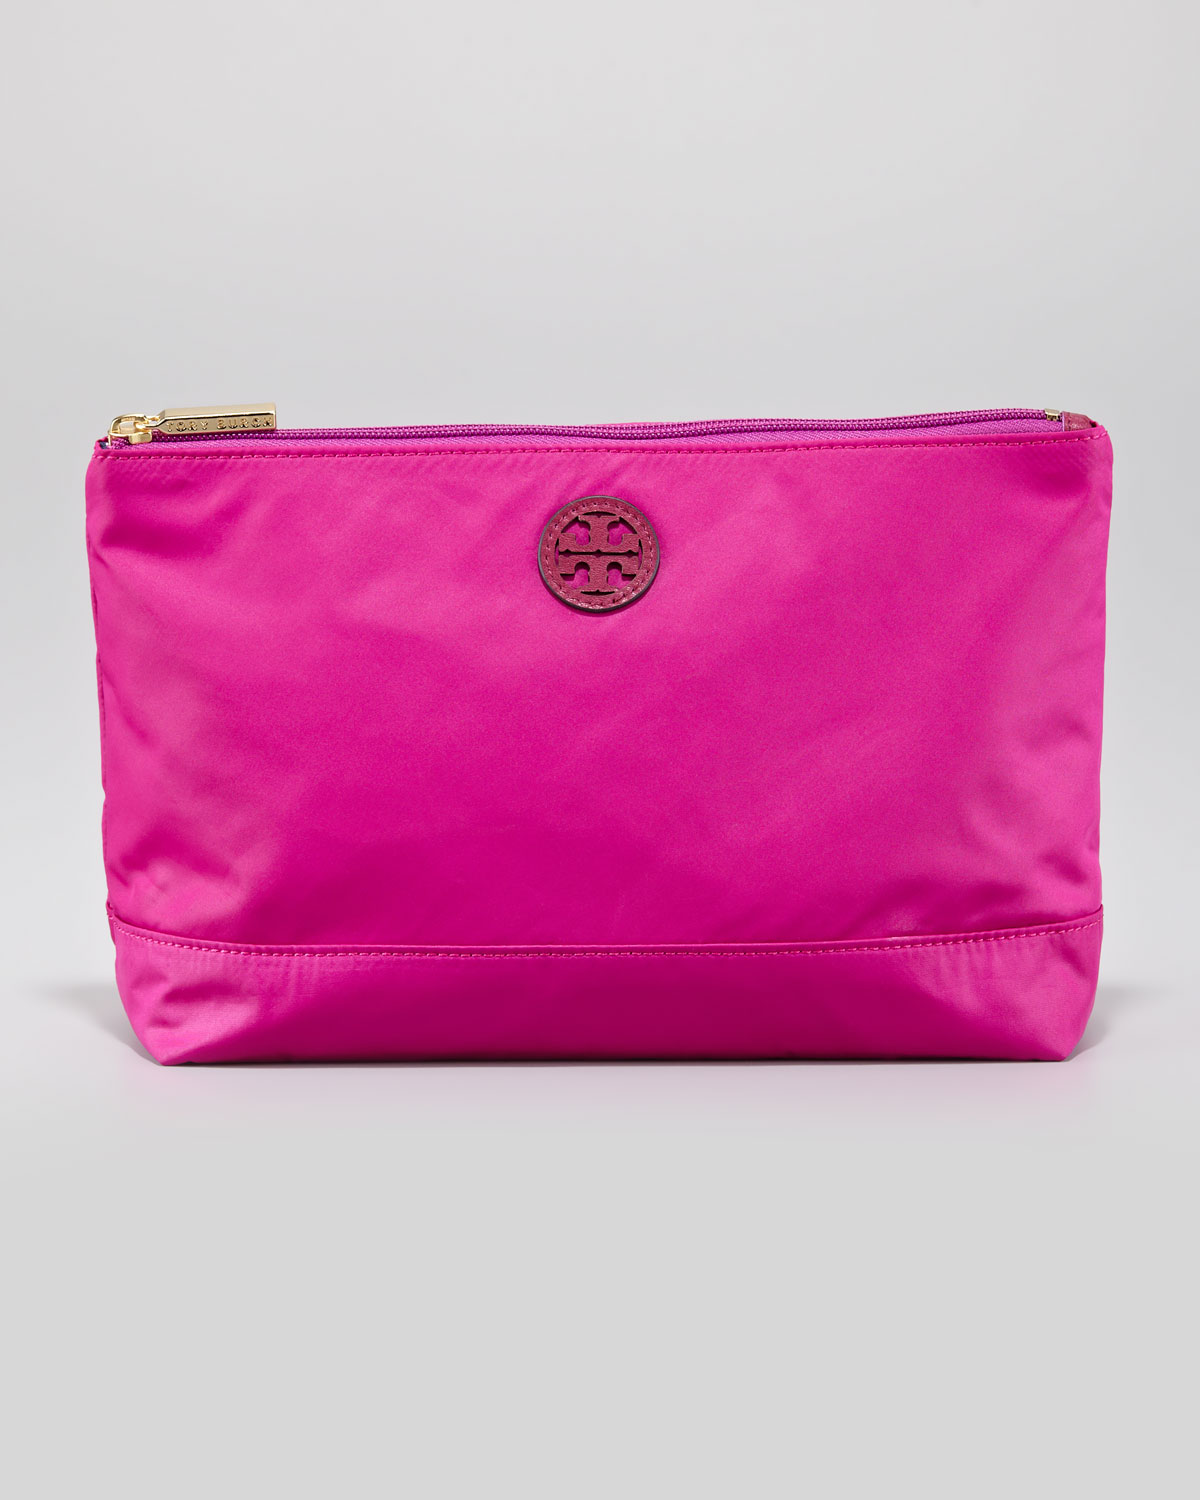 Tory Burch Large Nylon Cosmetic Case Party Fuchsia Pink